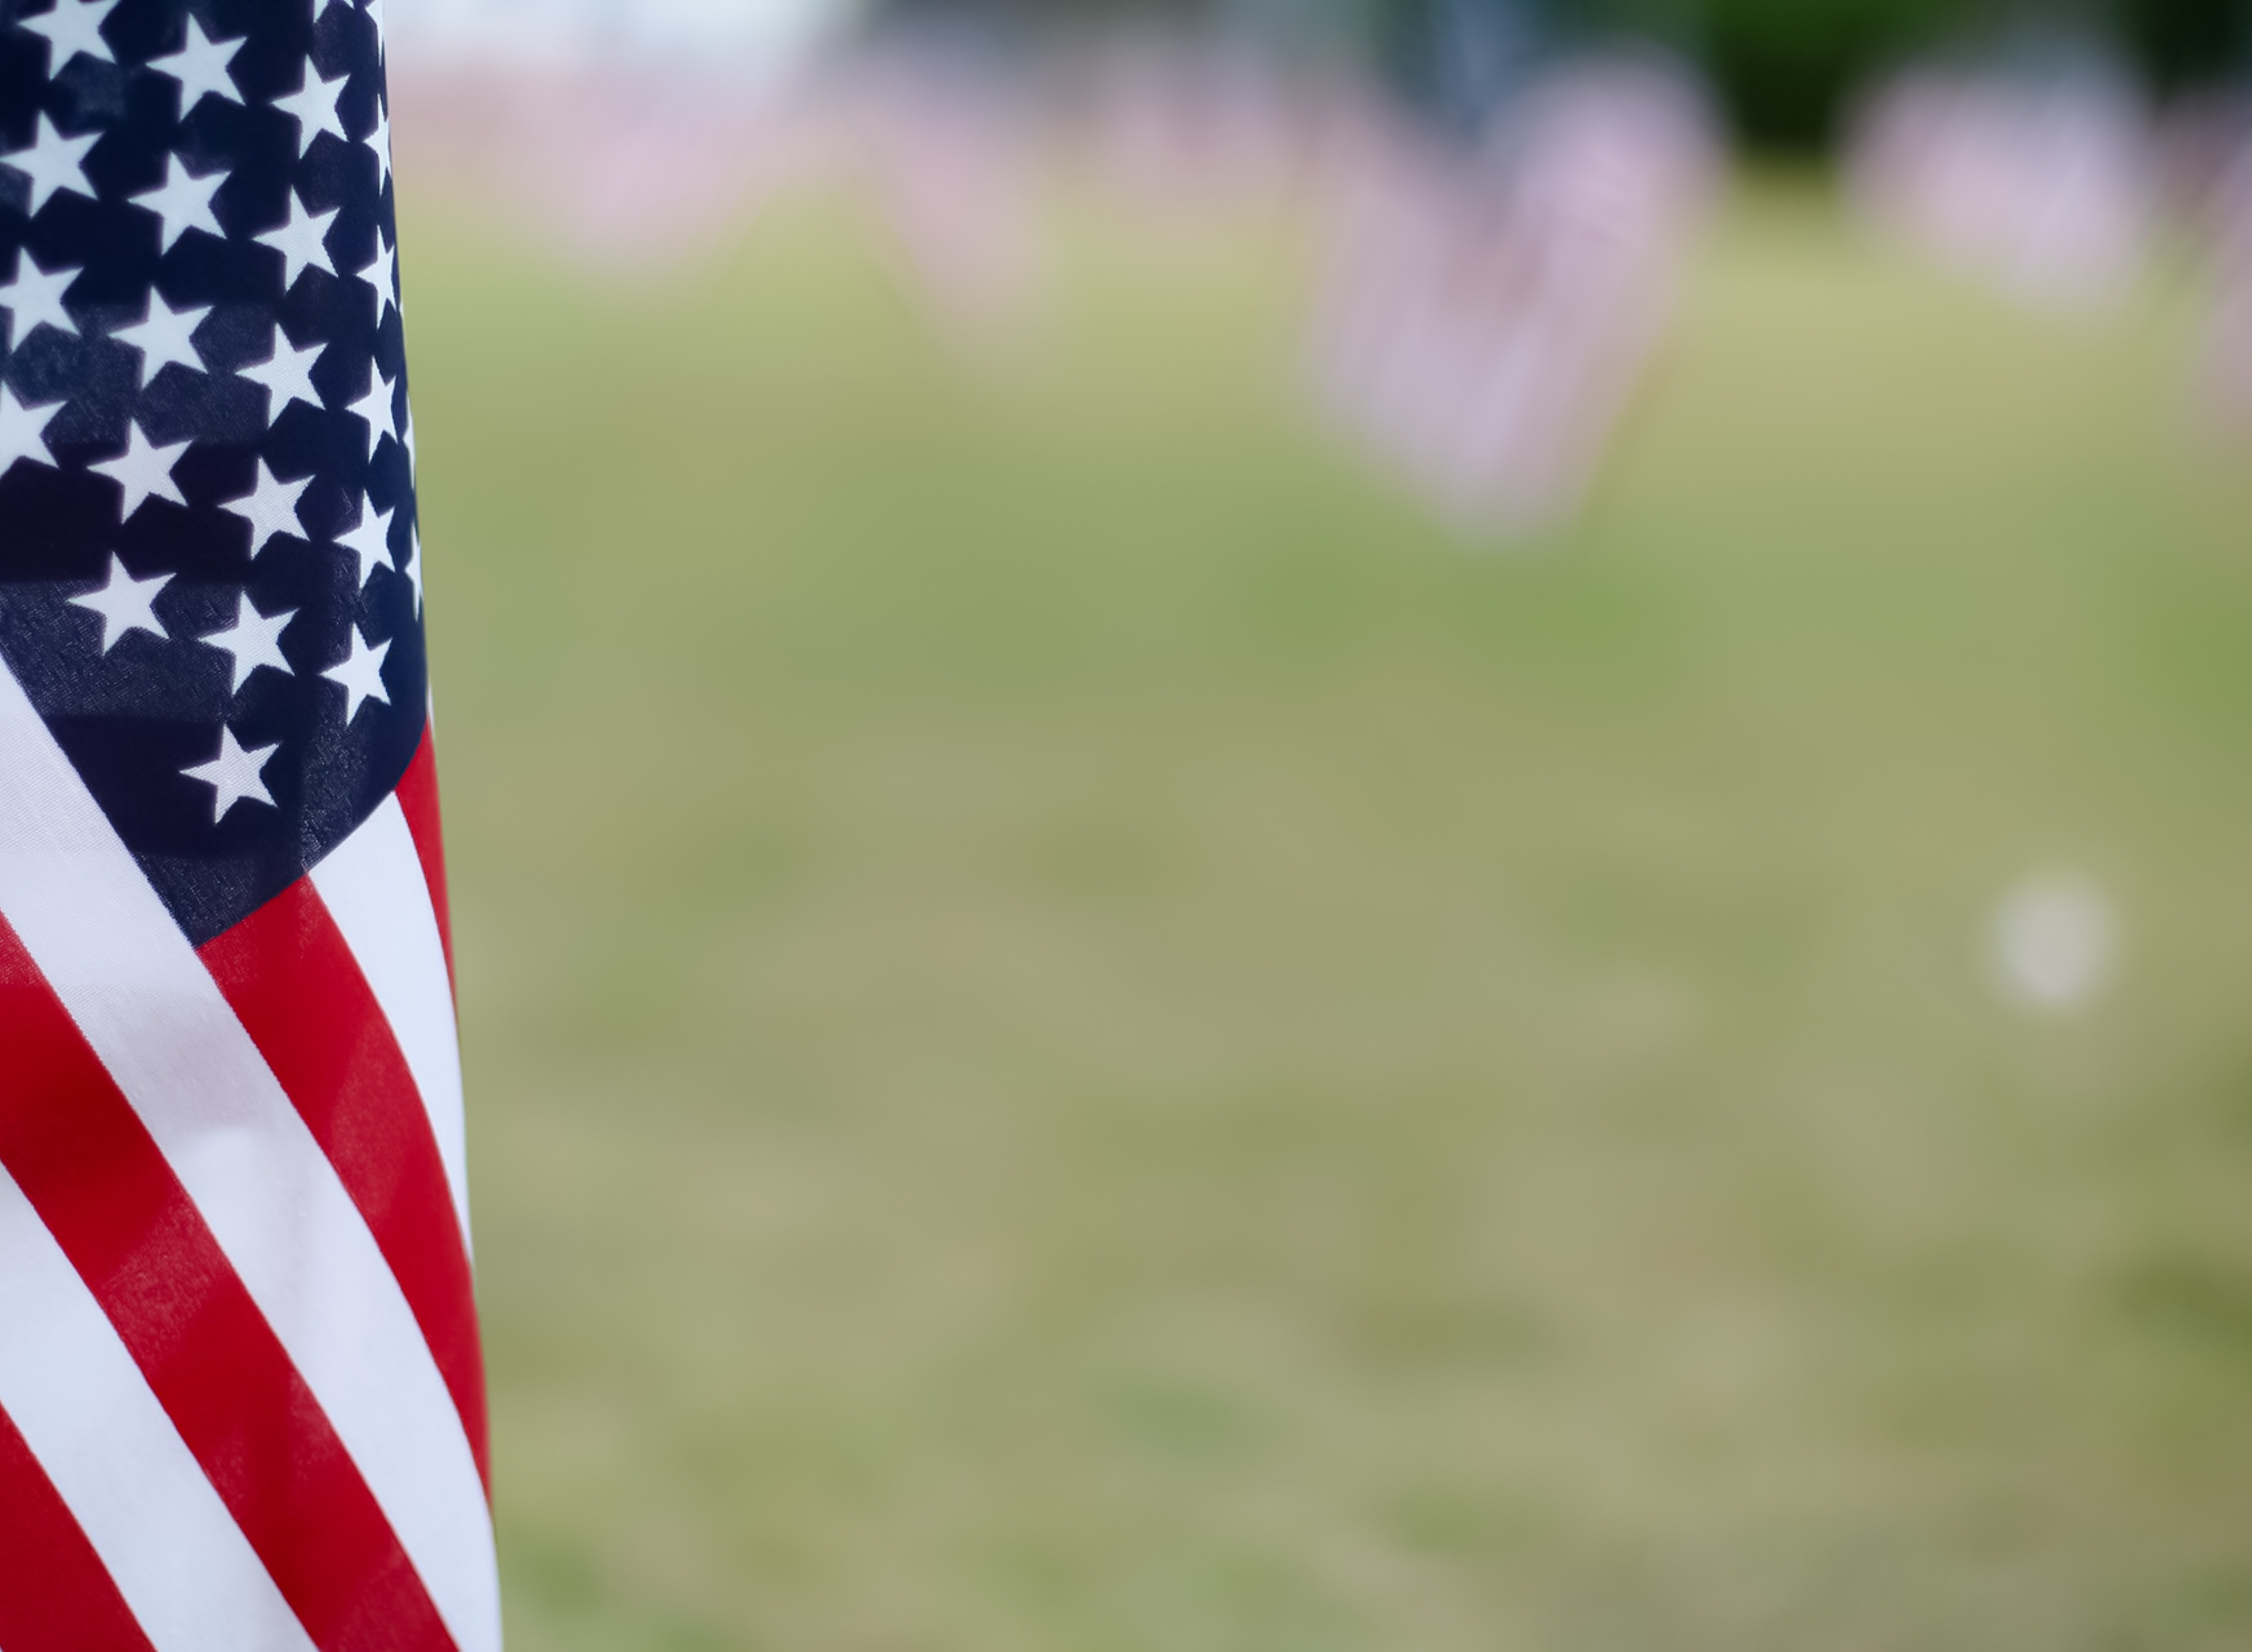 selective focus photography of American flag